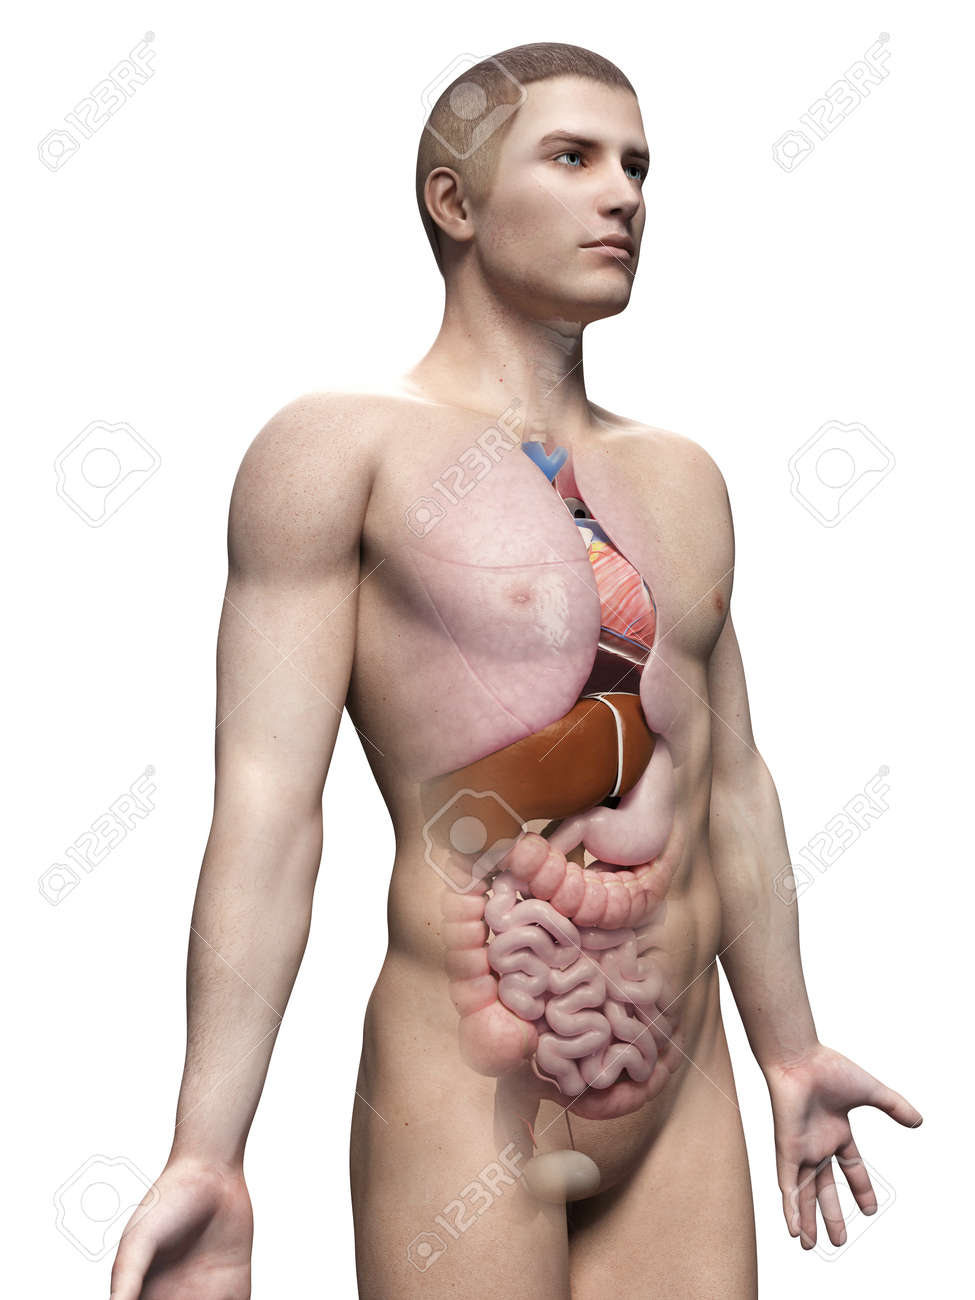 Male Anatomy Illustration - The Organs Stock Photo, Picture And ...